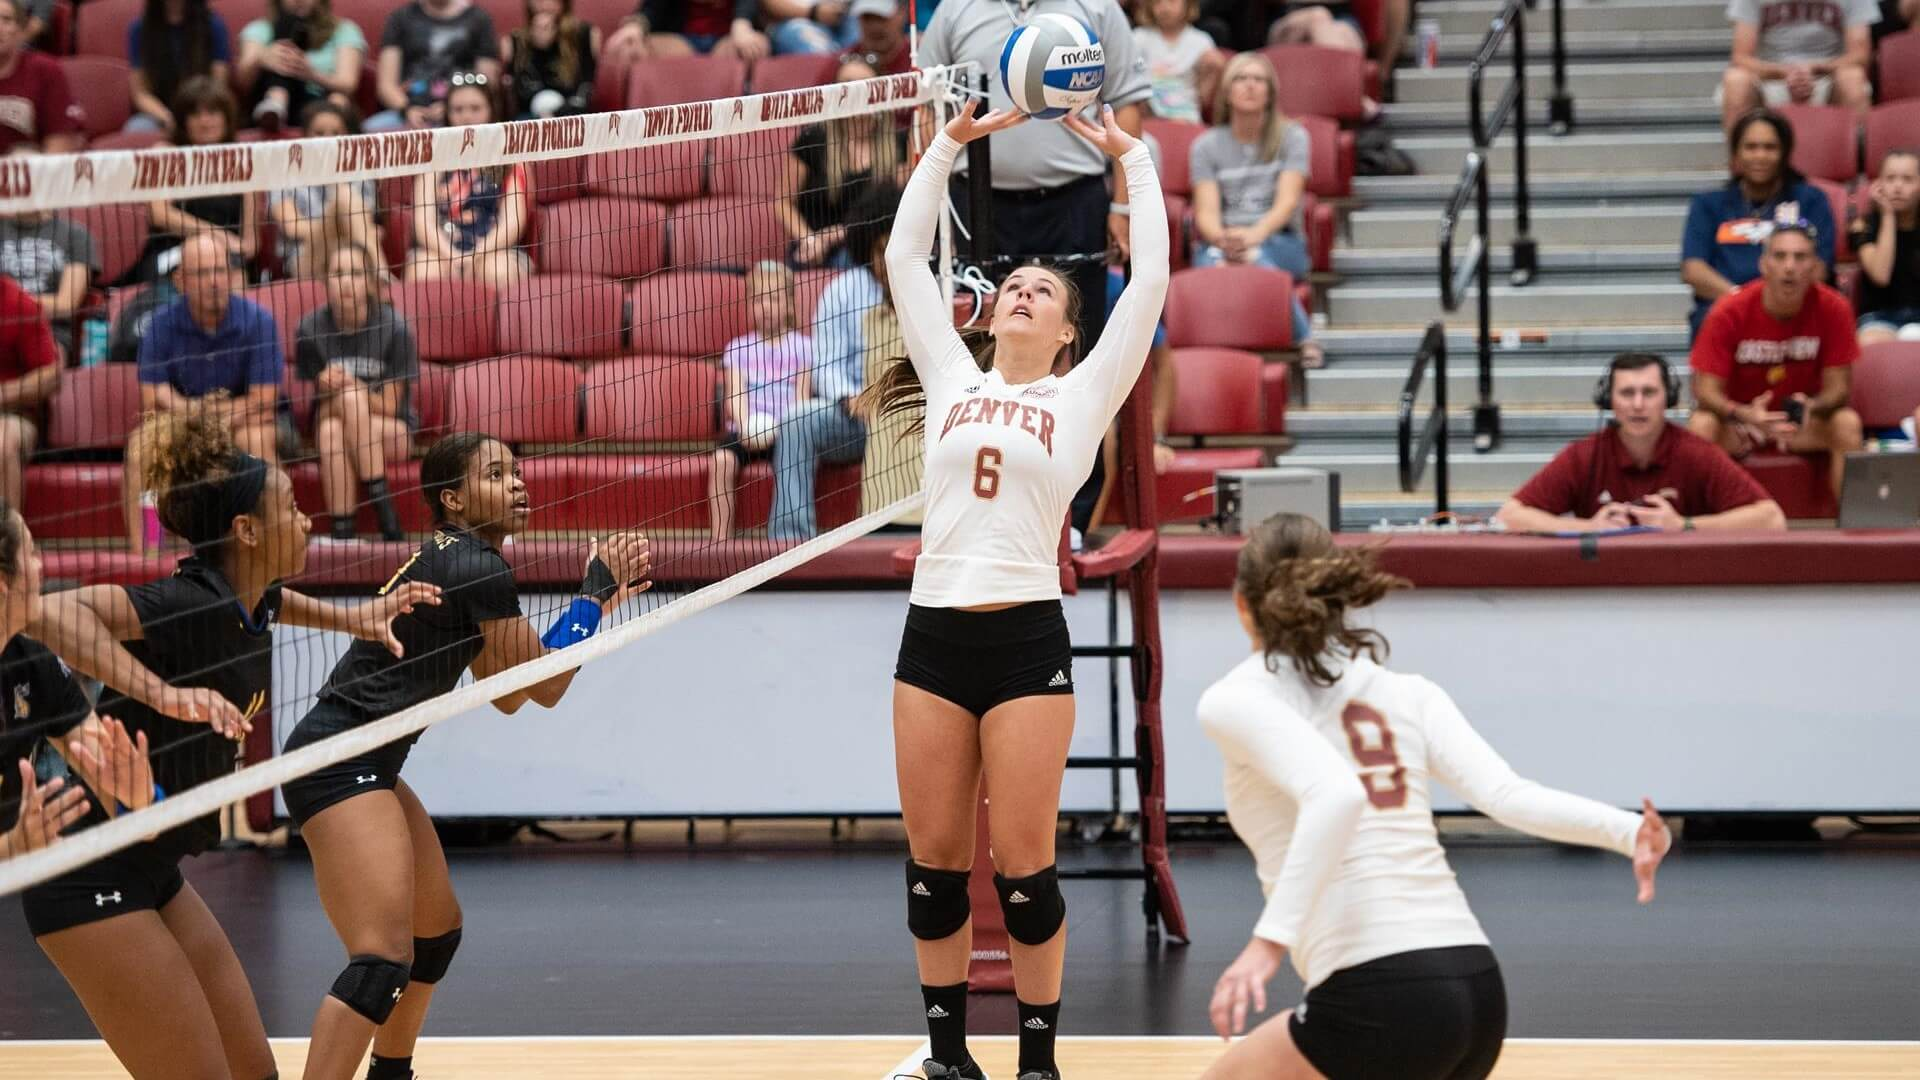 Women's Volleyball - University of Denver